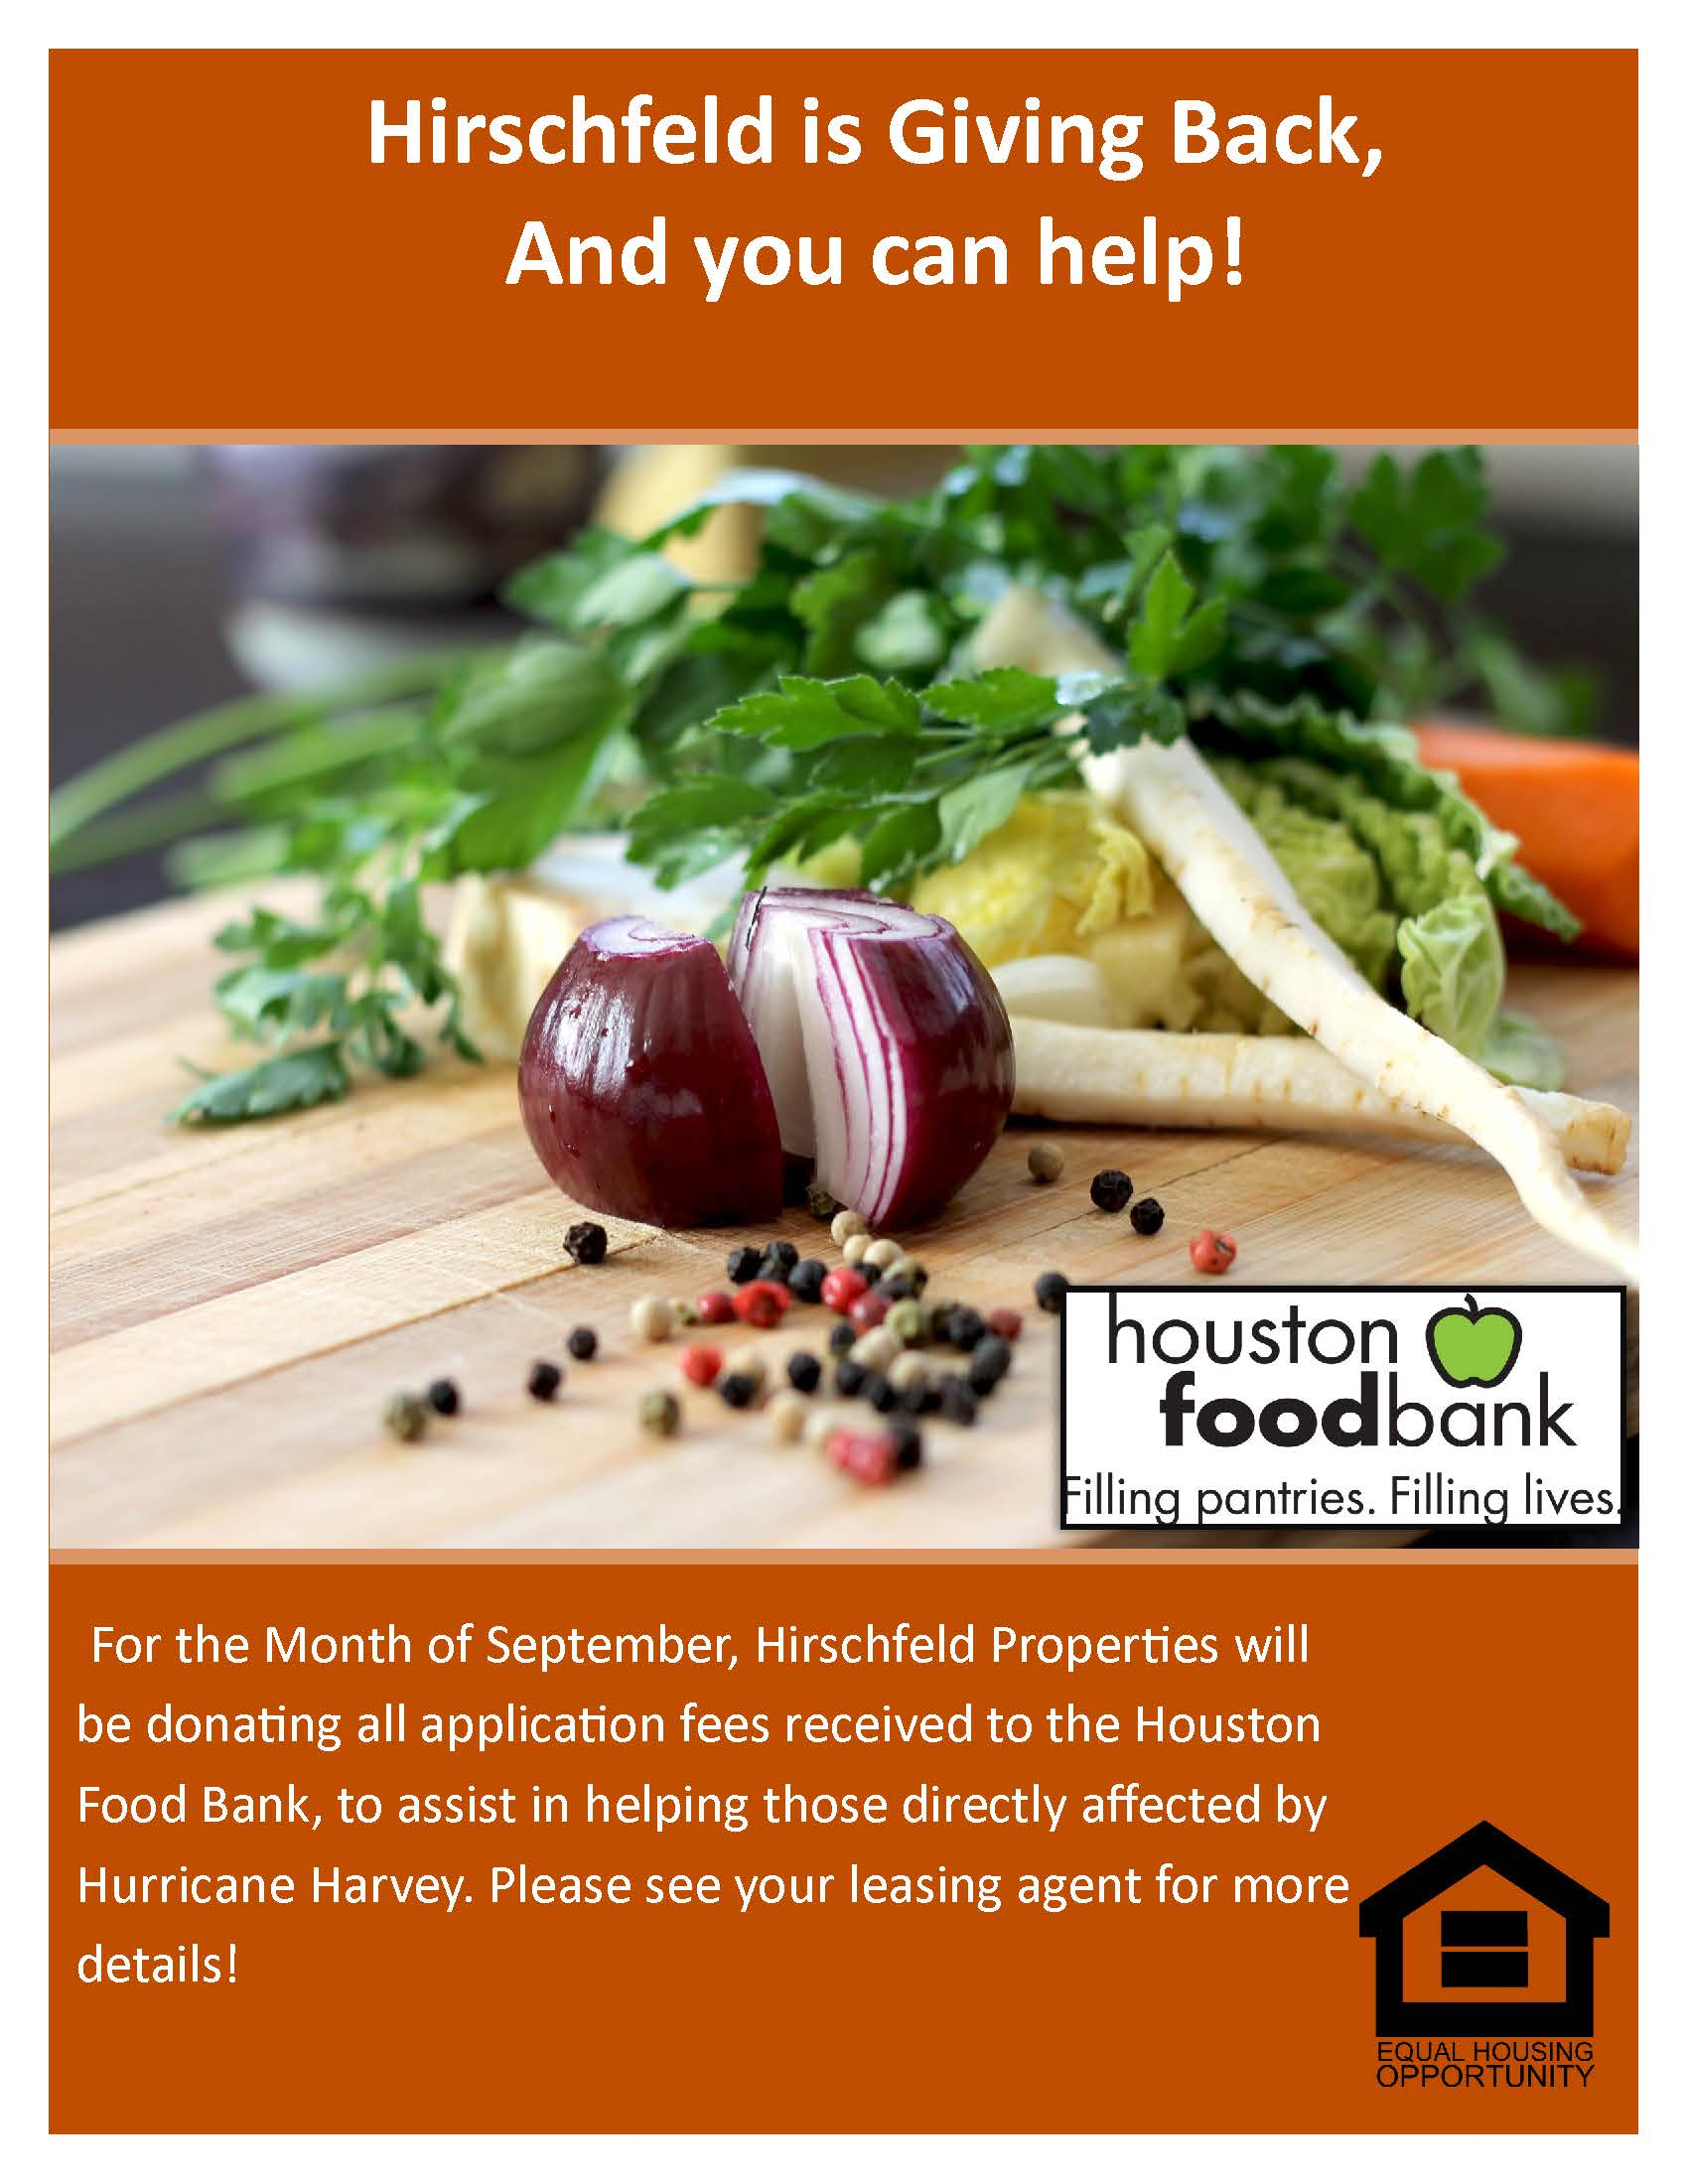 hirschfeld is giving back and you can help houston food bank donations